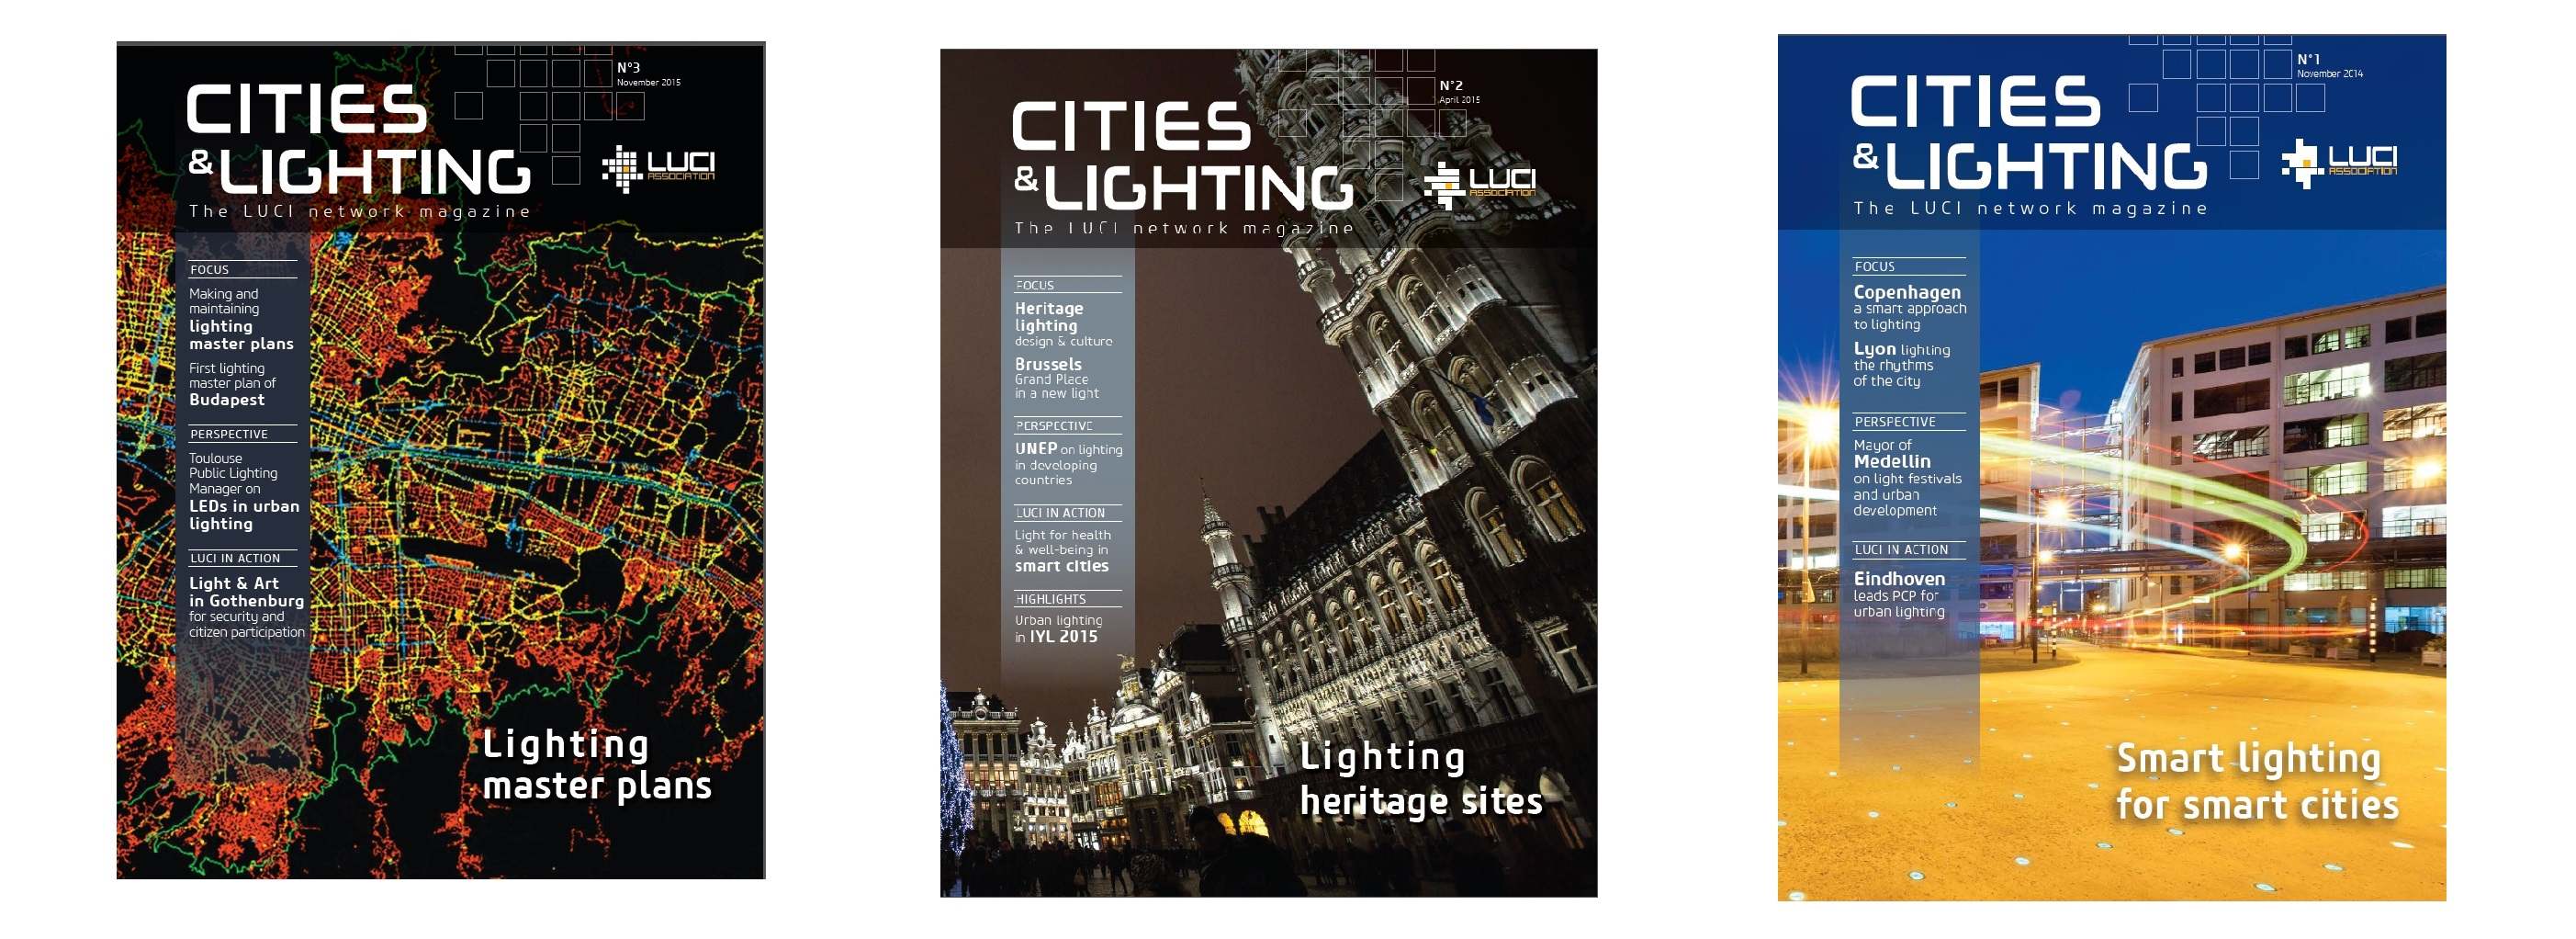 covers Cities & Lighting 1 to 3